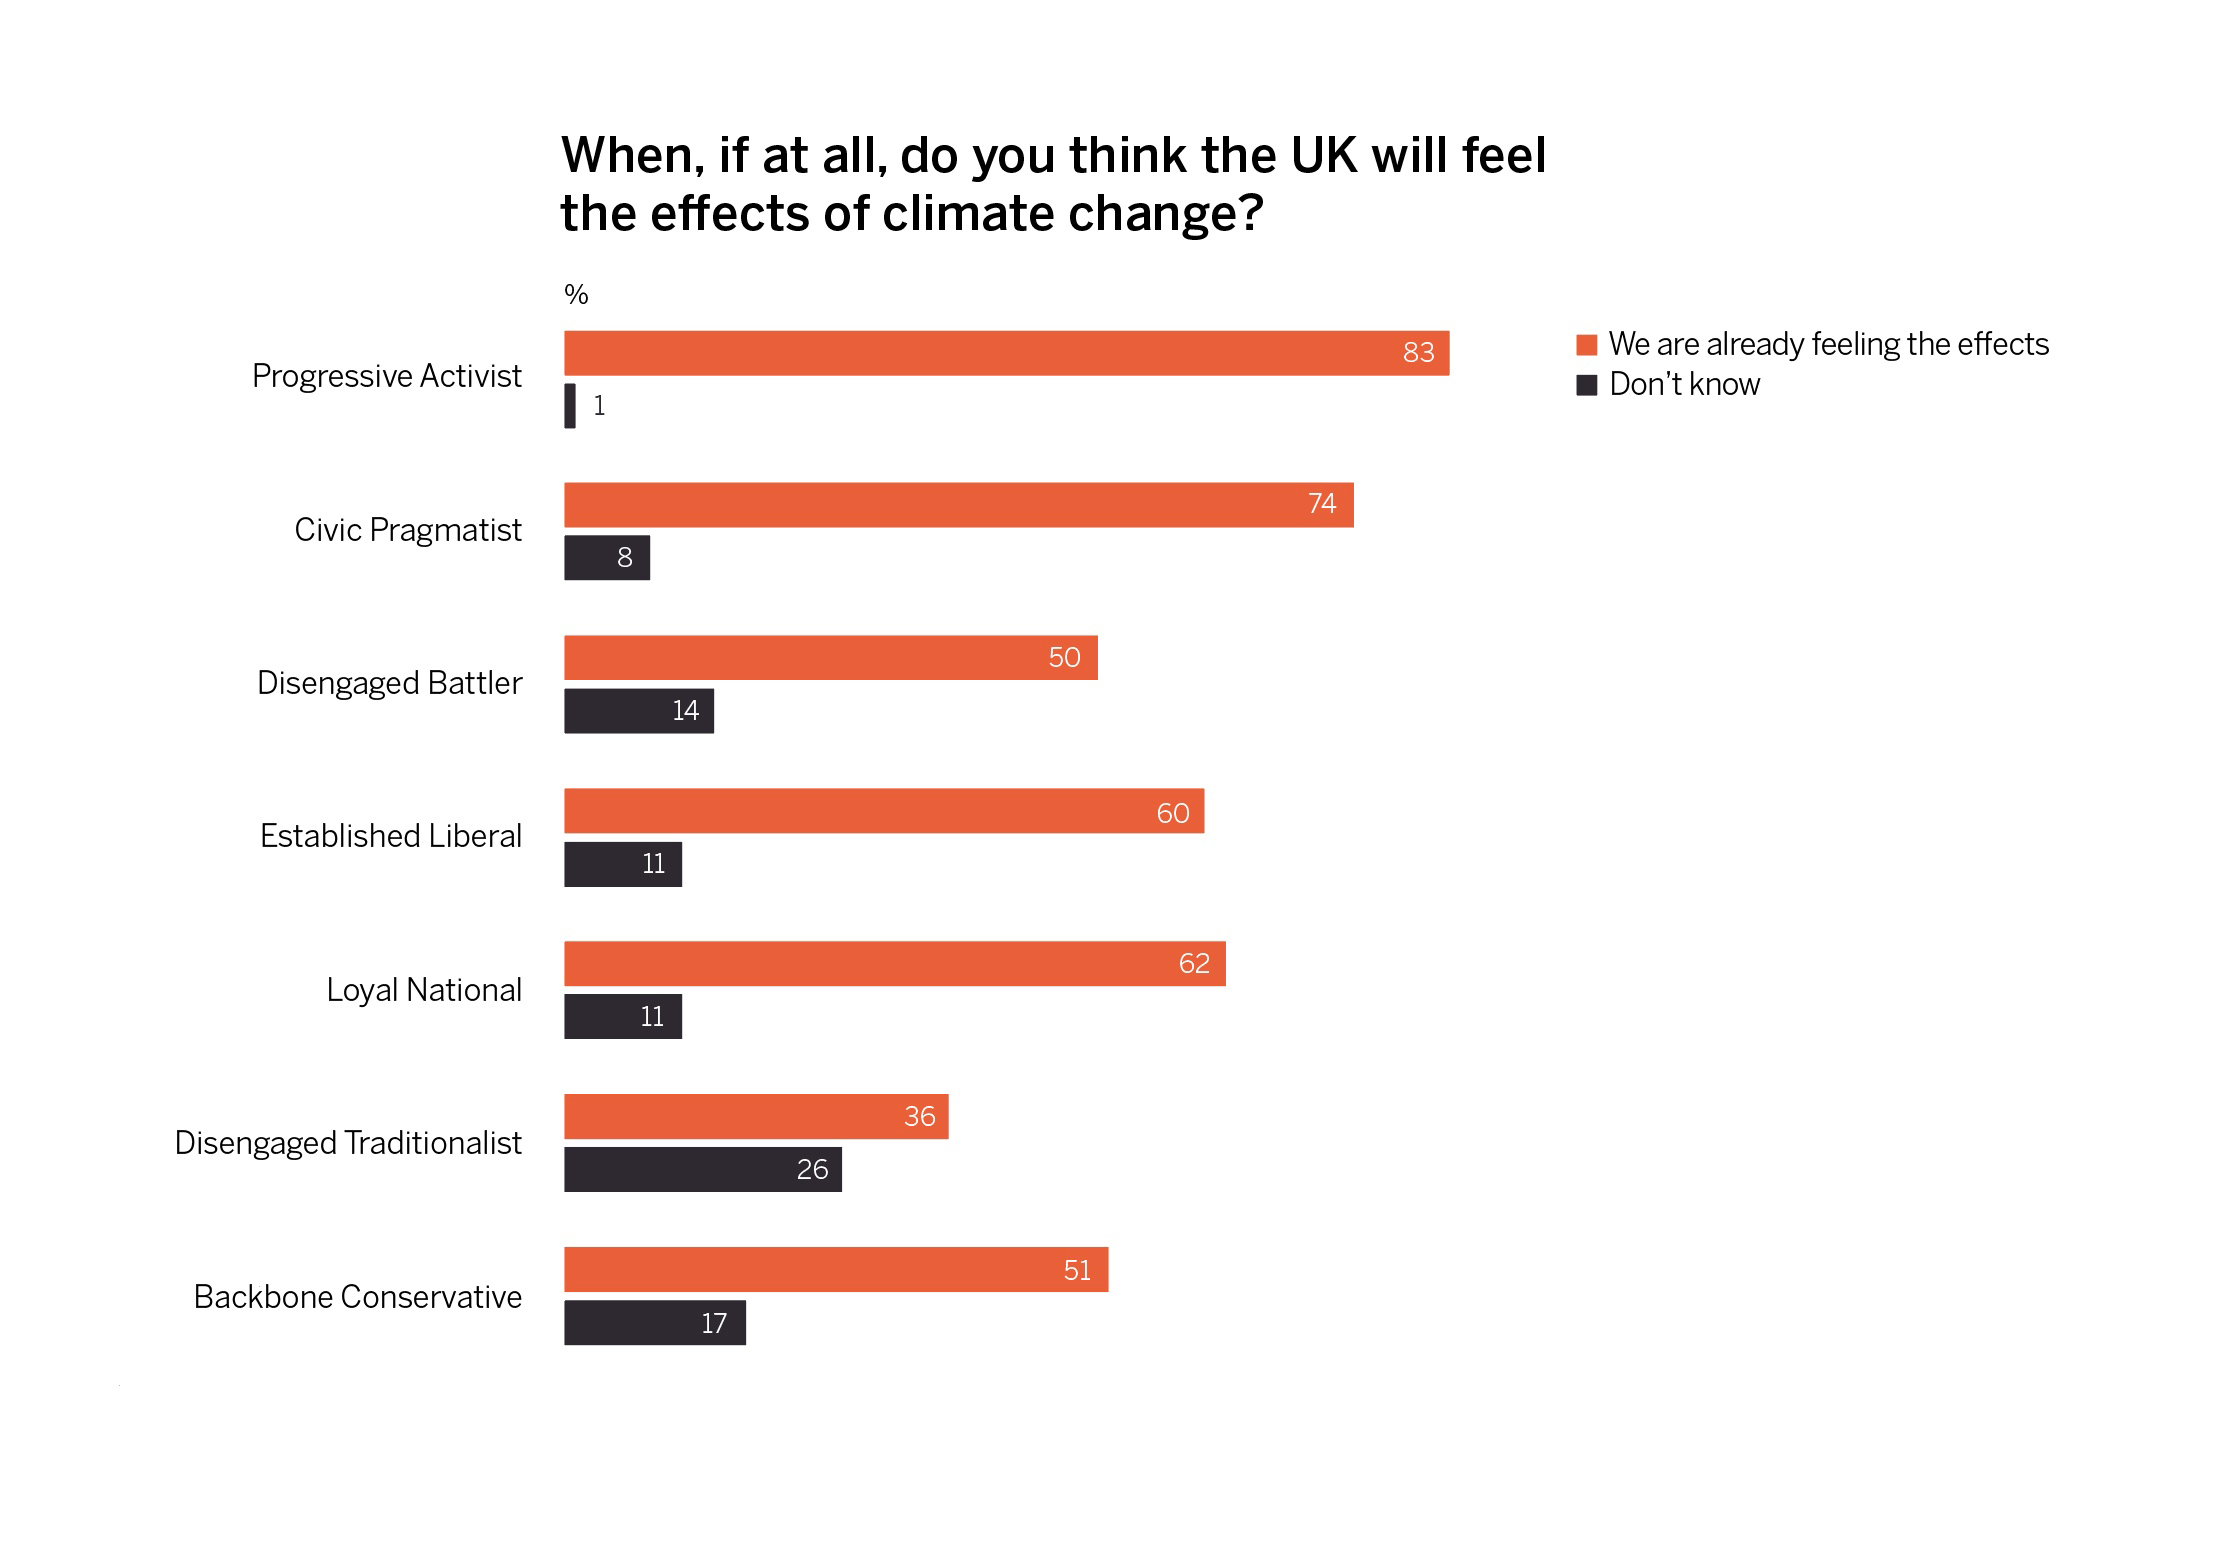 The percentage of people agreeing that we are already feeling the effects of climate change